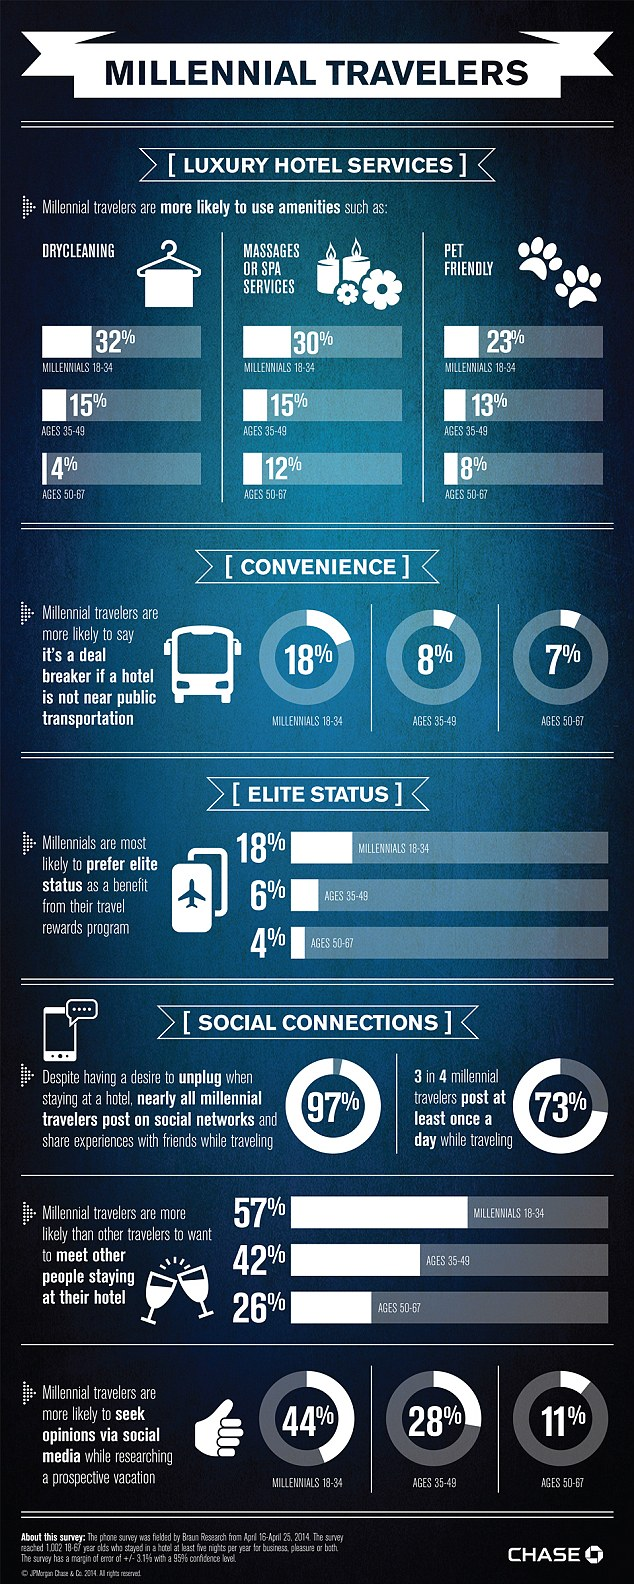 Infographic Reveals How Millennial Travellers Are More